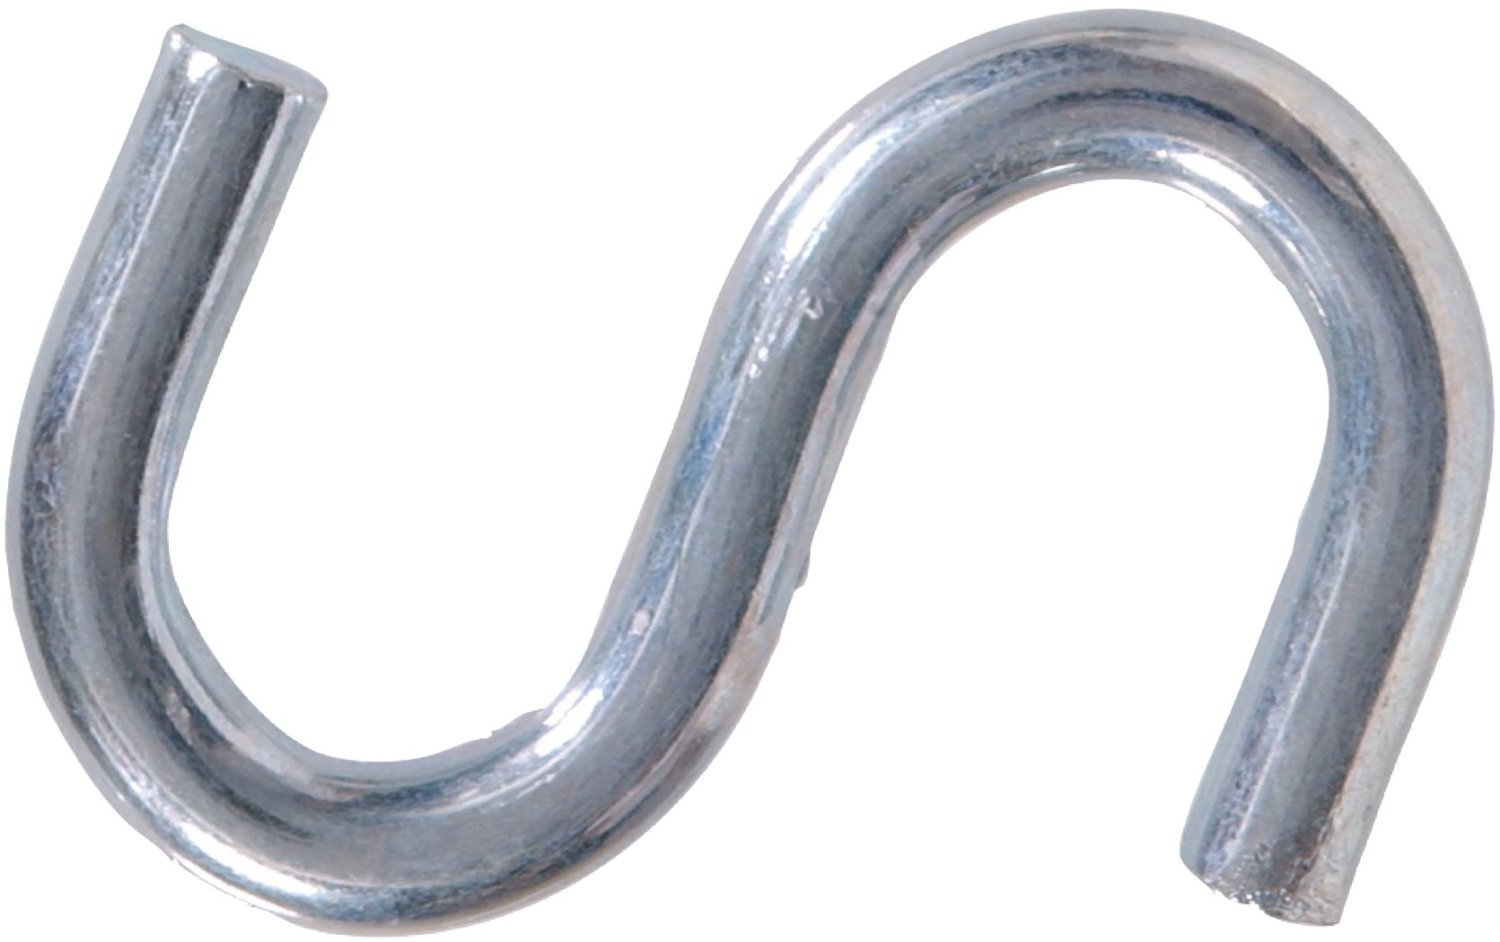 10-Pack The Hillman Group The Hillman Group 706 Zinc S Hook 1 3//4 In